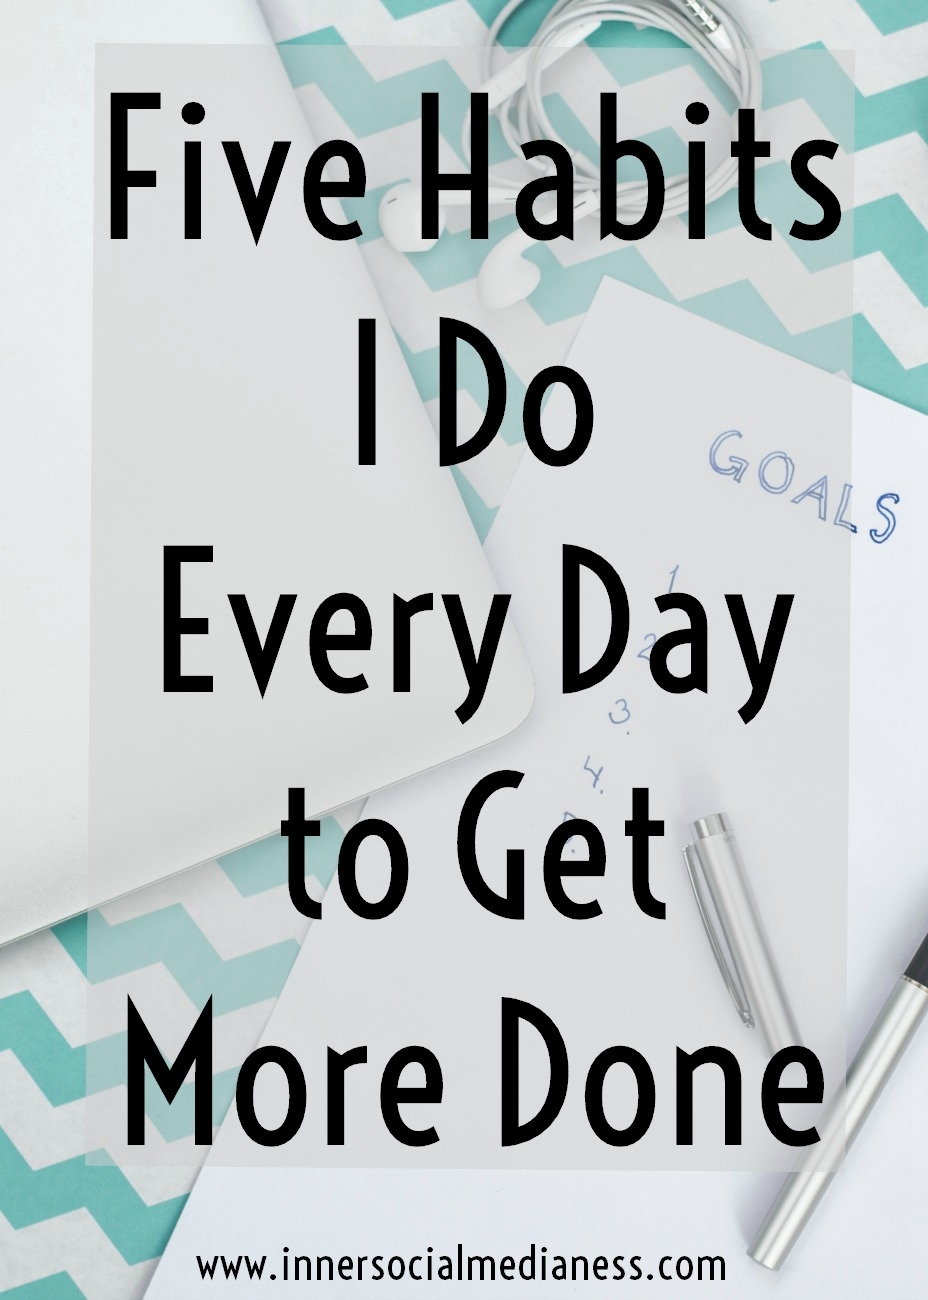 Five Habits I Do Every Day to Get More Done - Tools are great to help you work every day but what's really going to help you reach your goals? You need to develop solid habits that will not only help you stay focused, but they'll motivate you to keep moving and growing and getting more done.